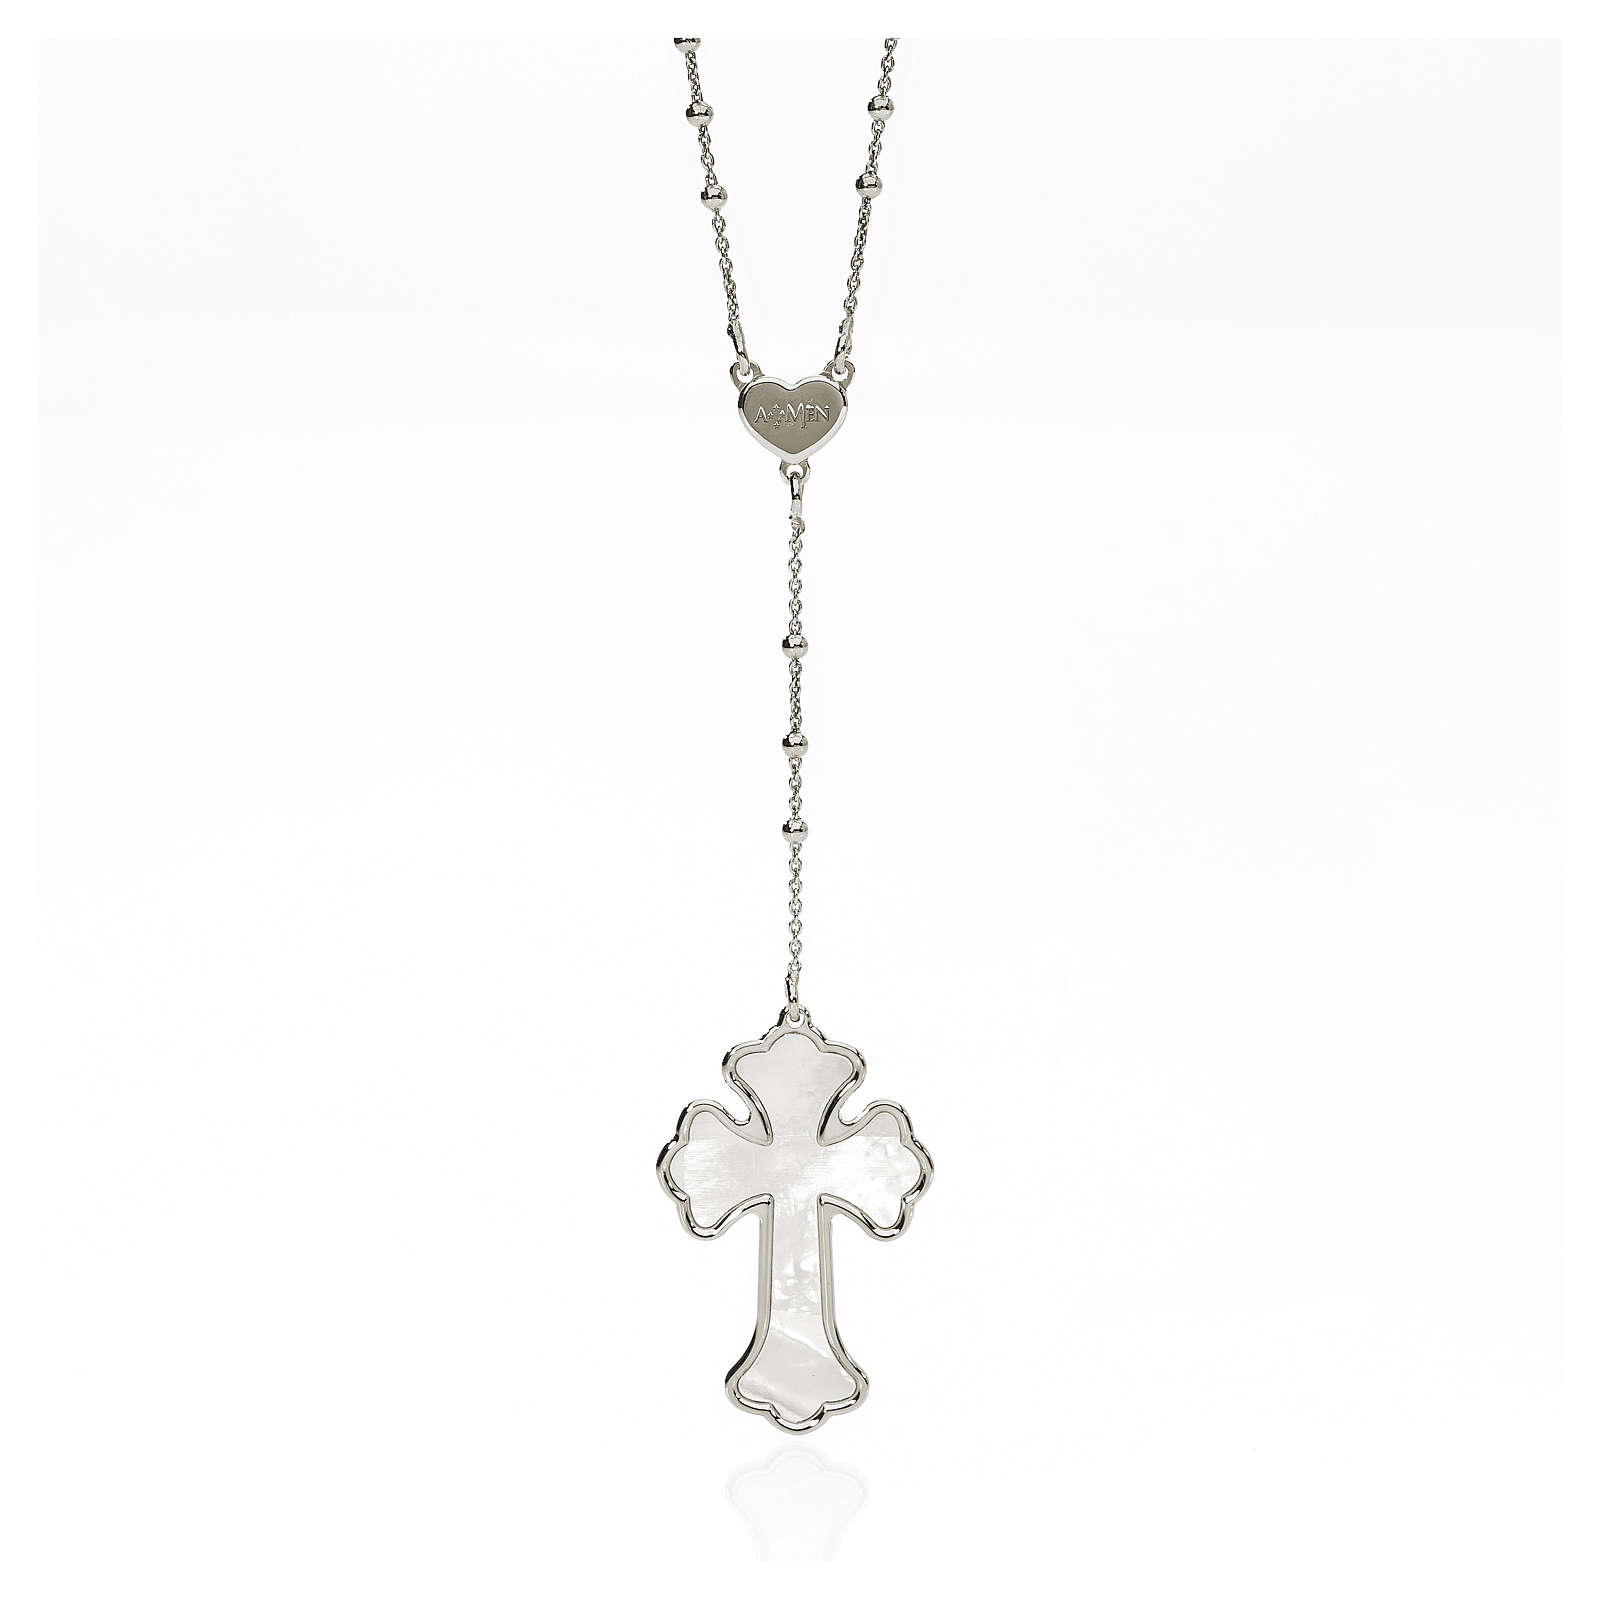 AMEN Necklace Heart and Cross silver 925, mother-of-pearl Rhodium finish 4